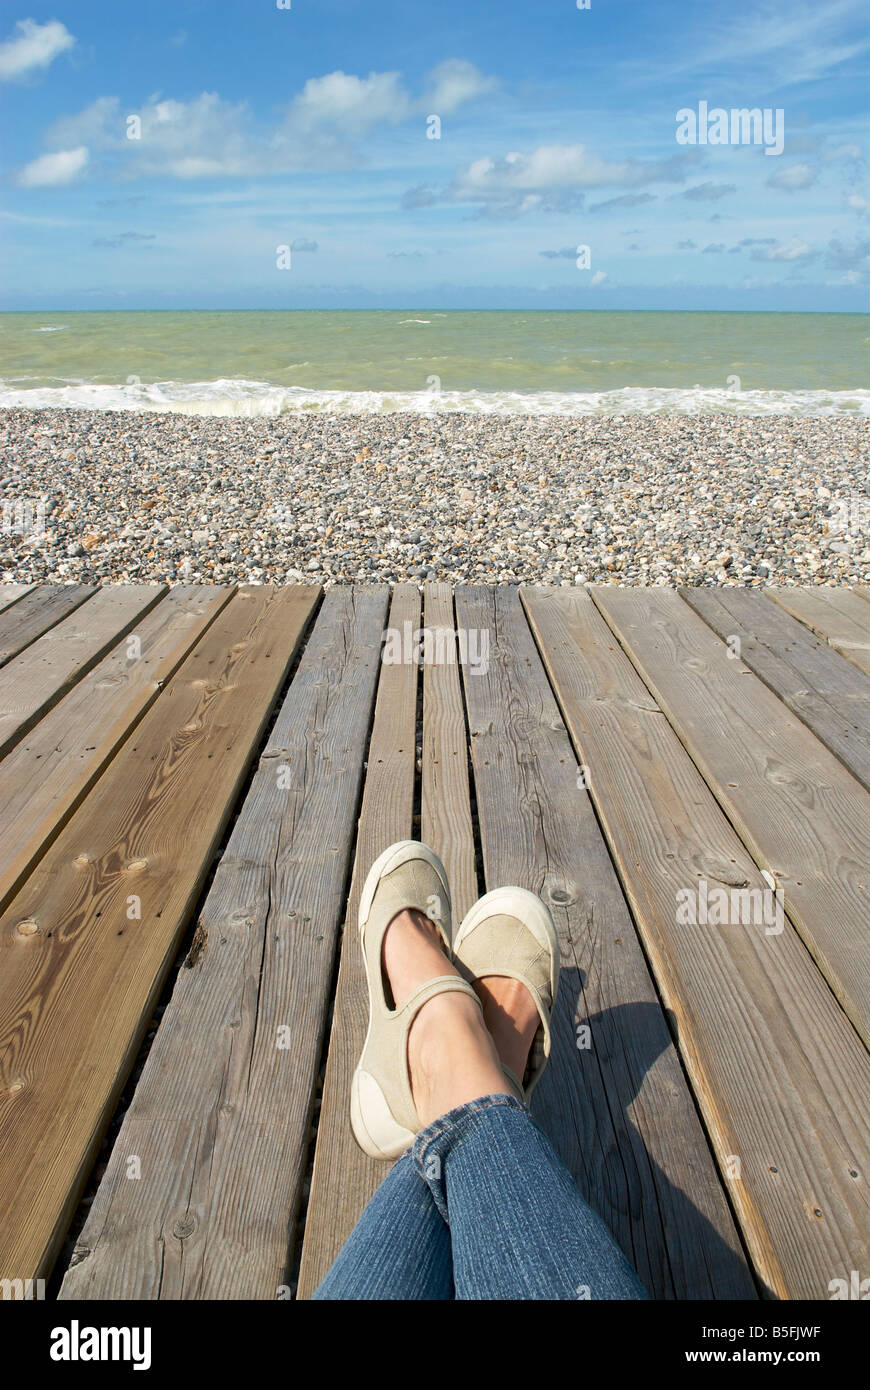 View of two legs and feet relaxing on a board walk beside a pebbled beach and ocean - Stock Image